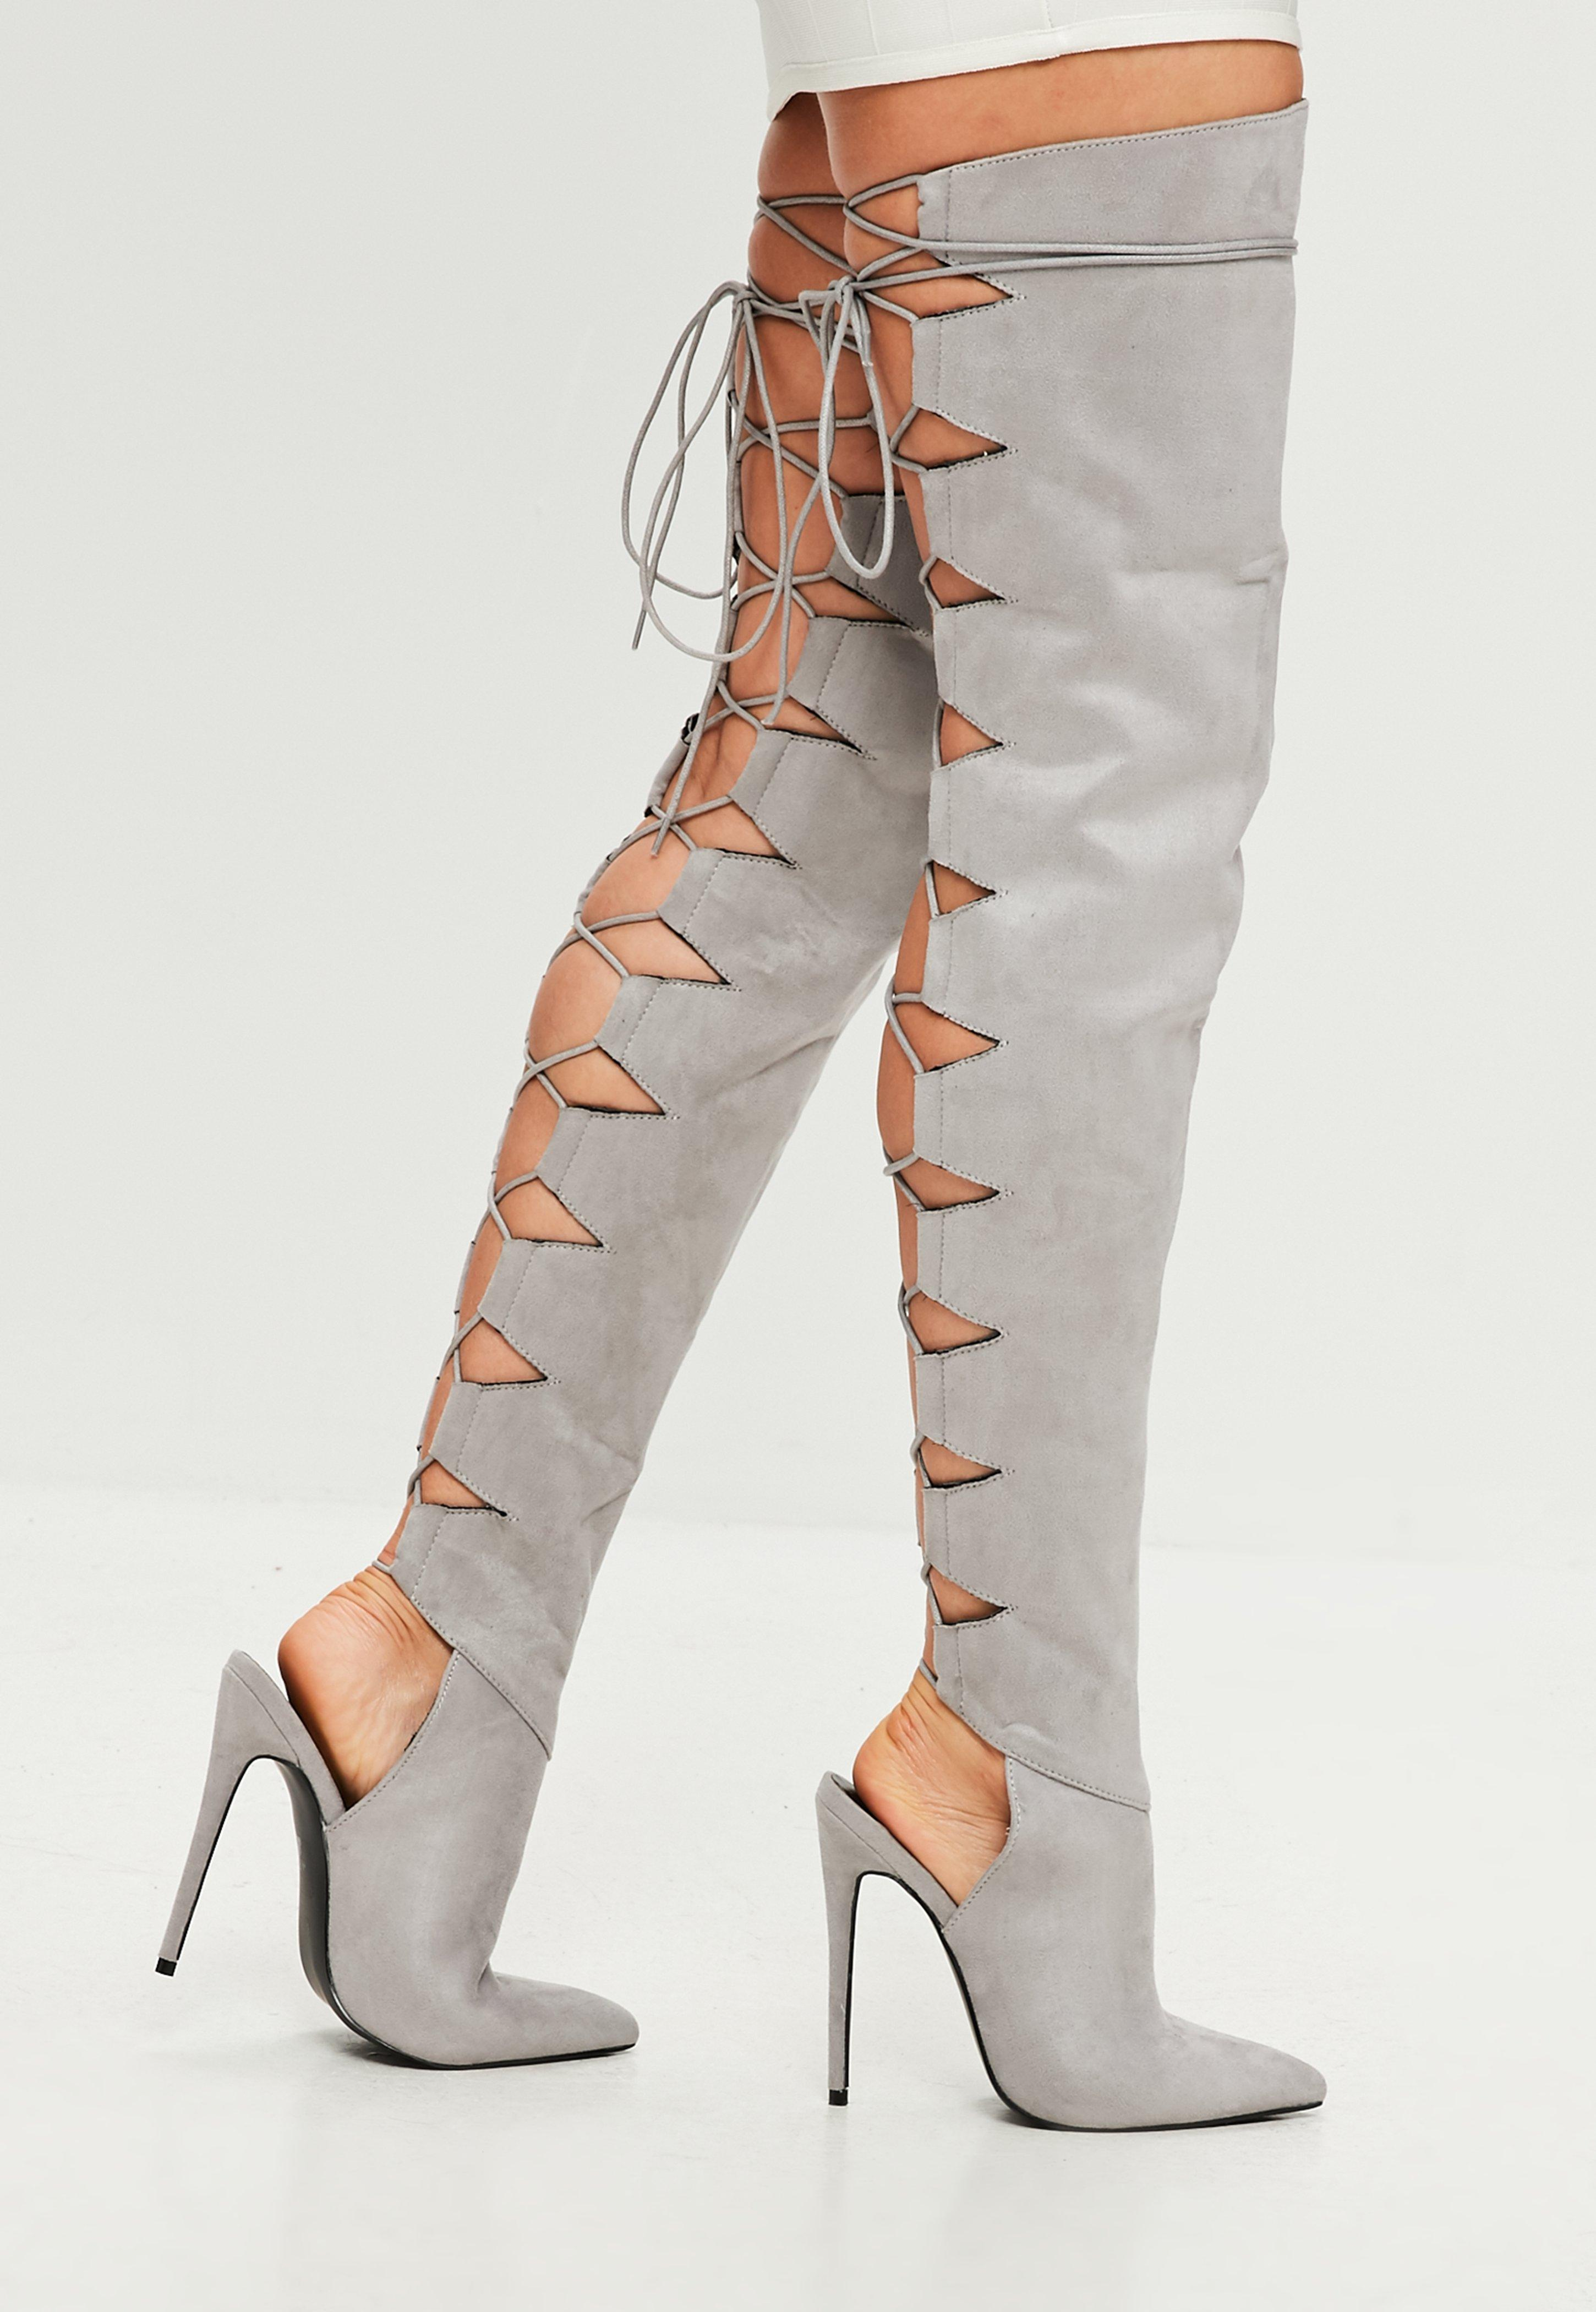 a2f5640c66c Lyst - Missguided Peace + Love Grey Lace Up Back Heeled Boot in Gray